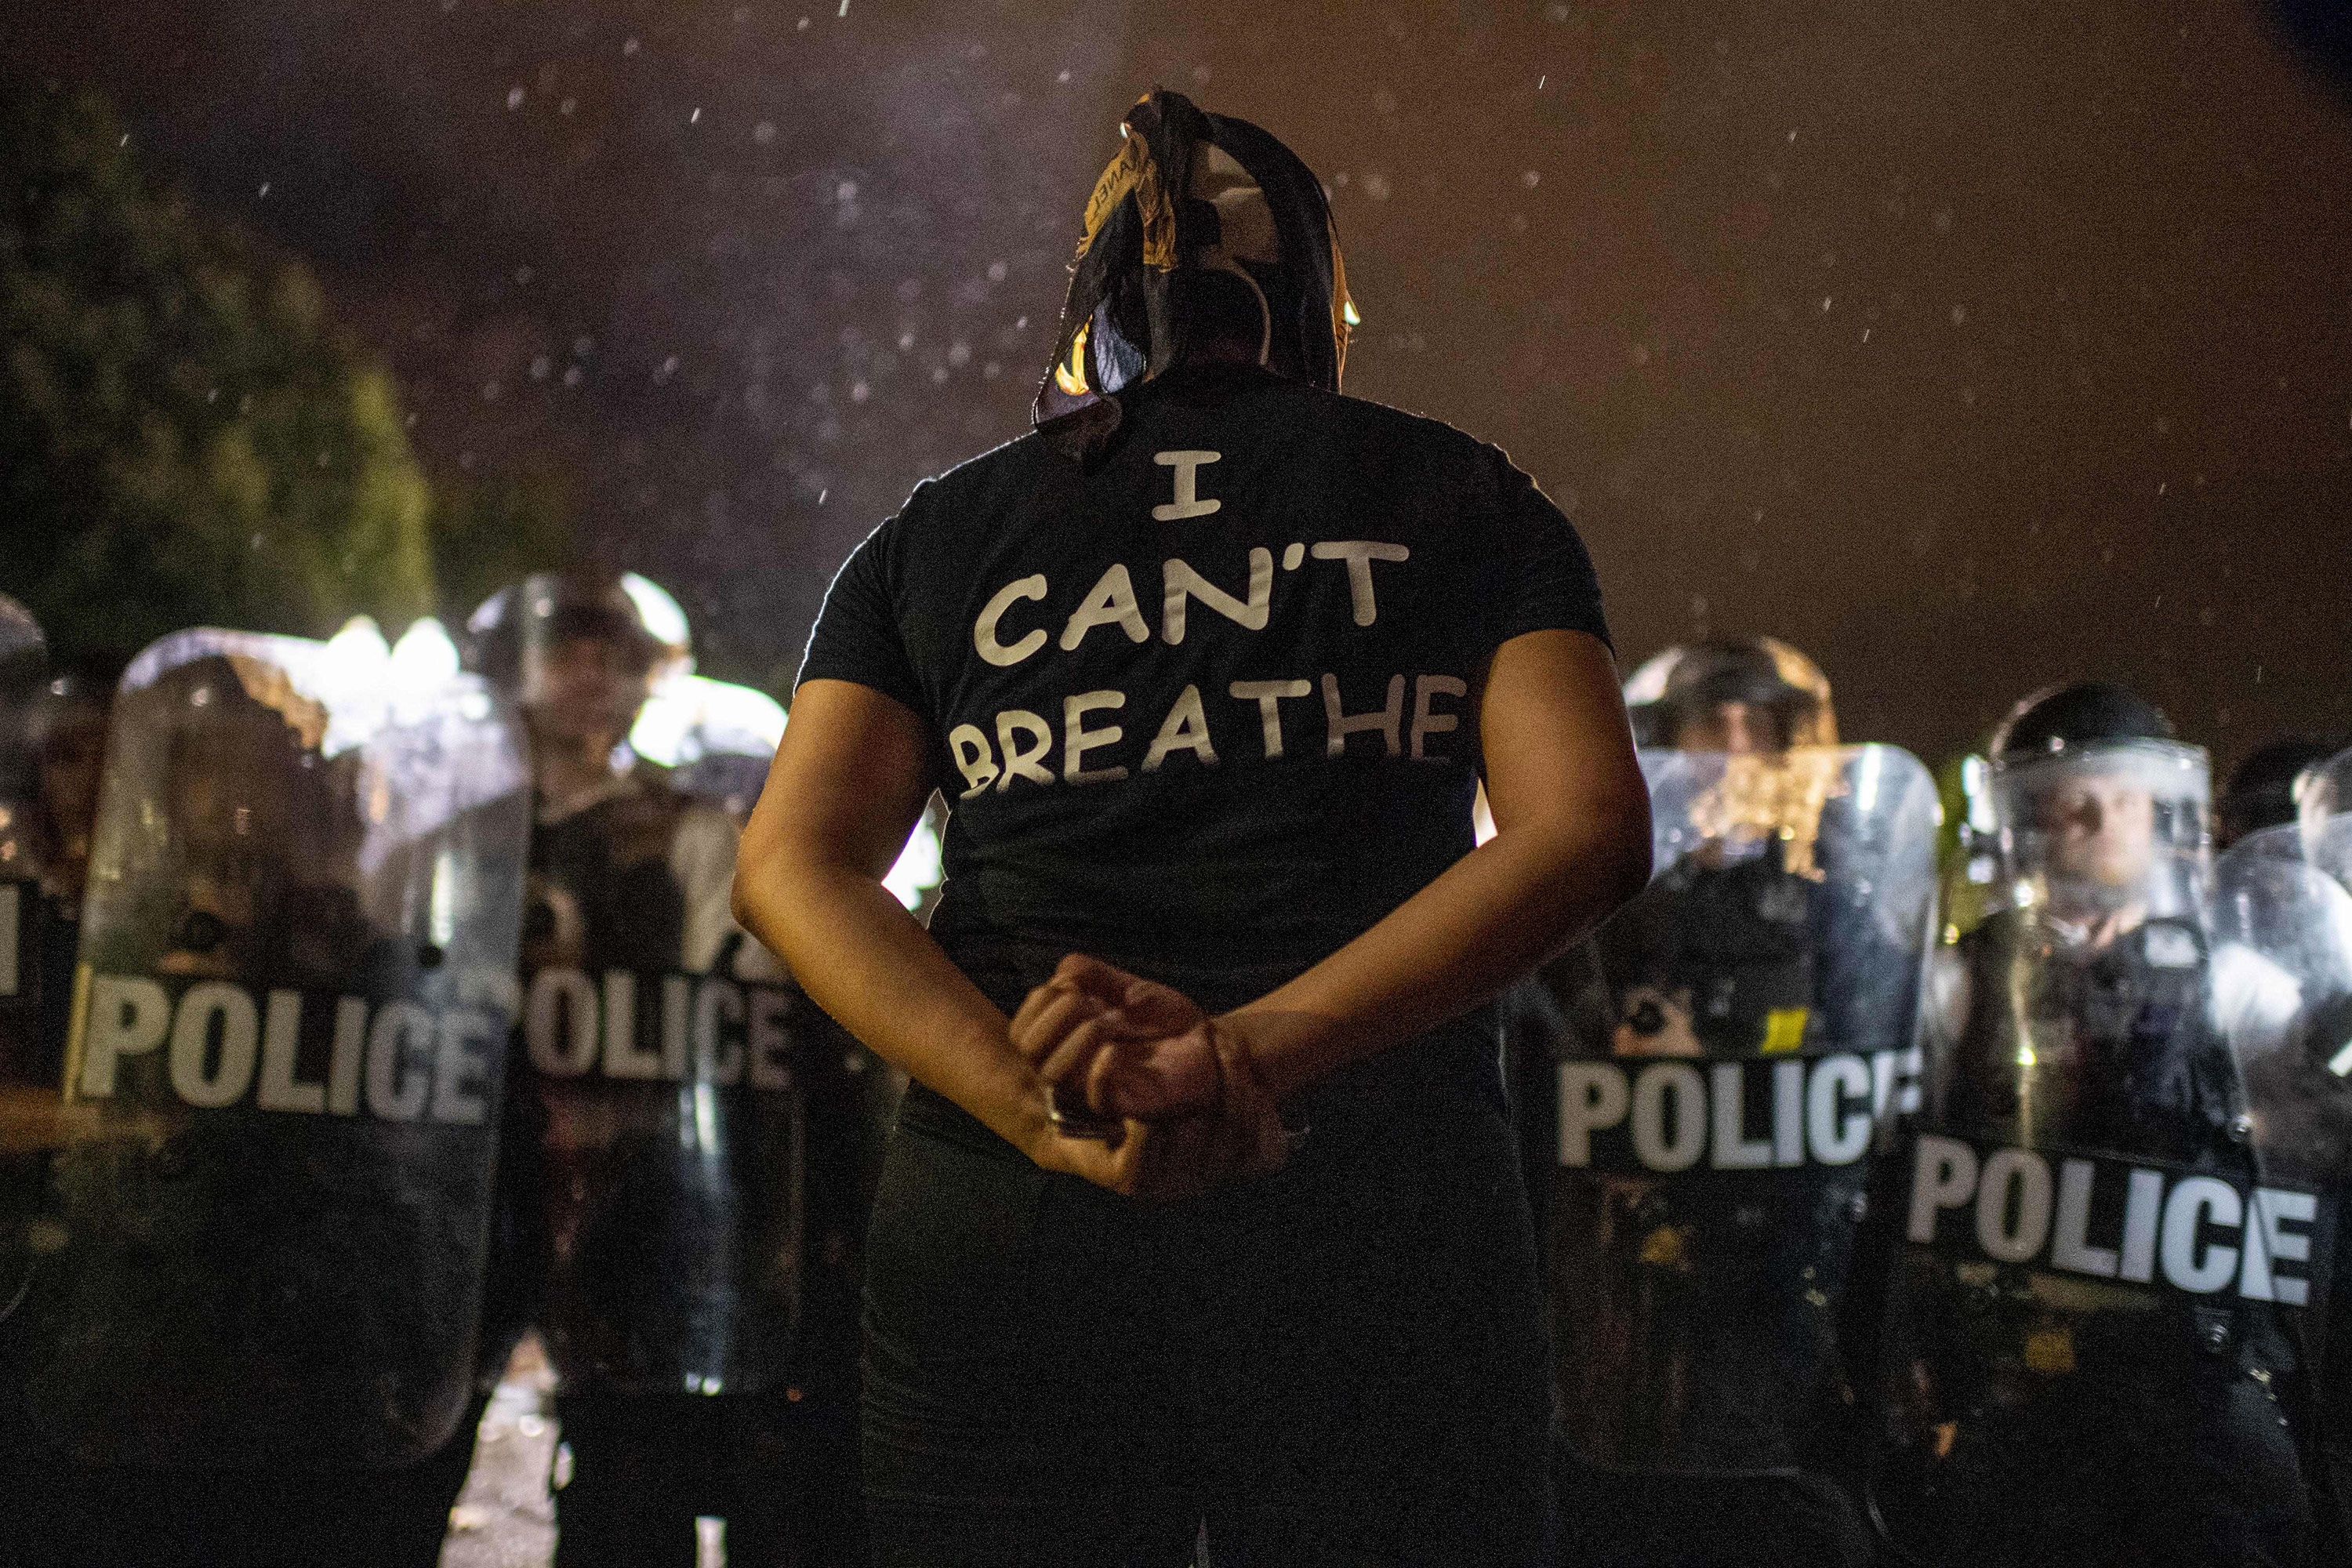 A protester stands in front of police outside the White House in Washington on May 30.